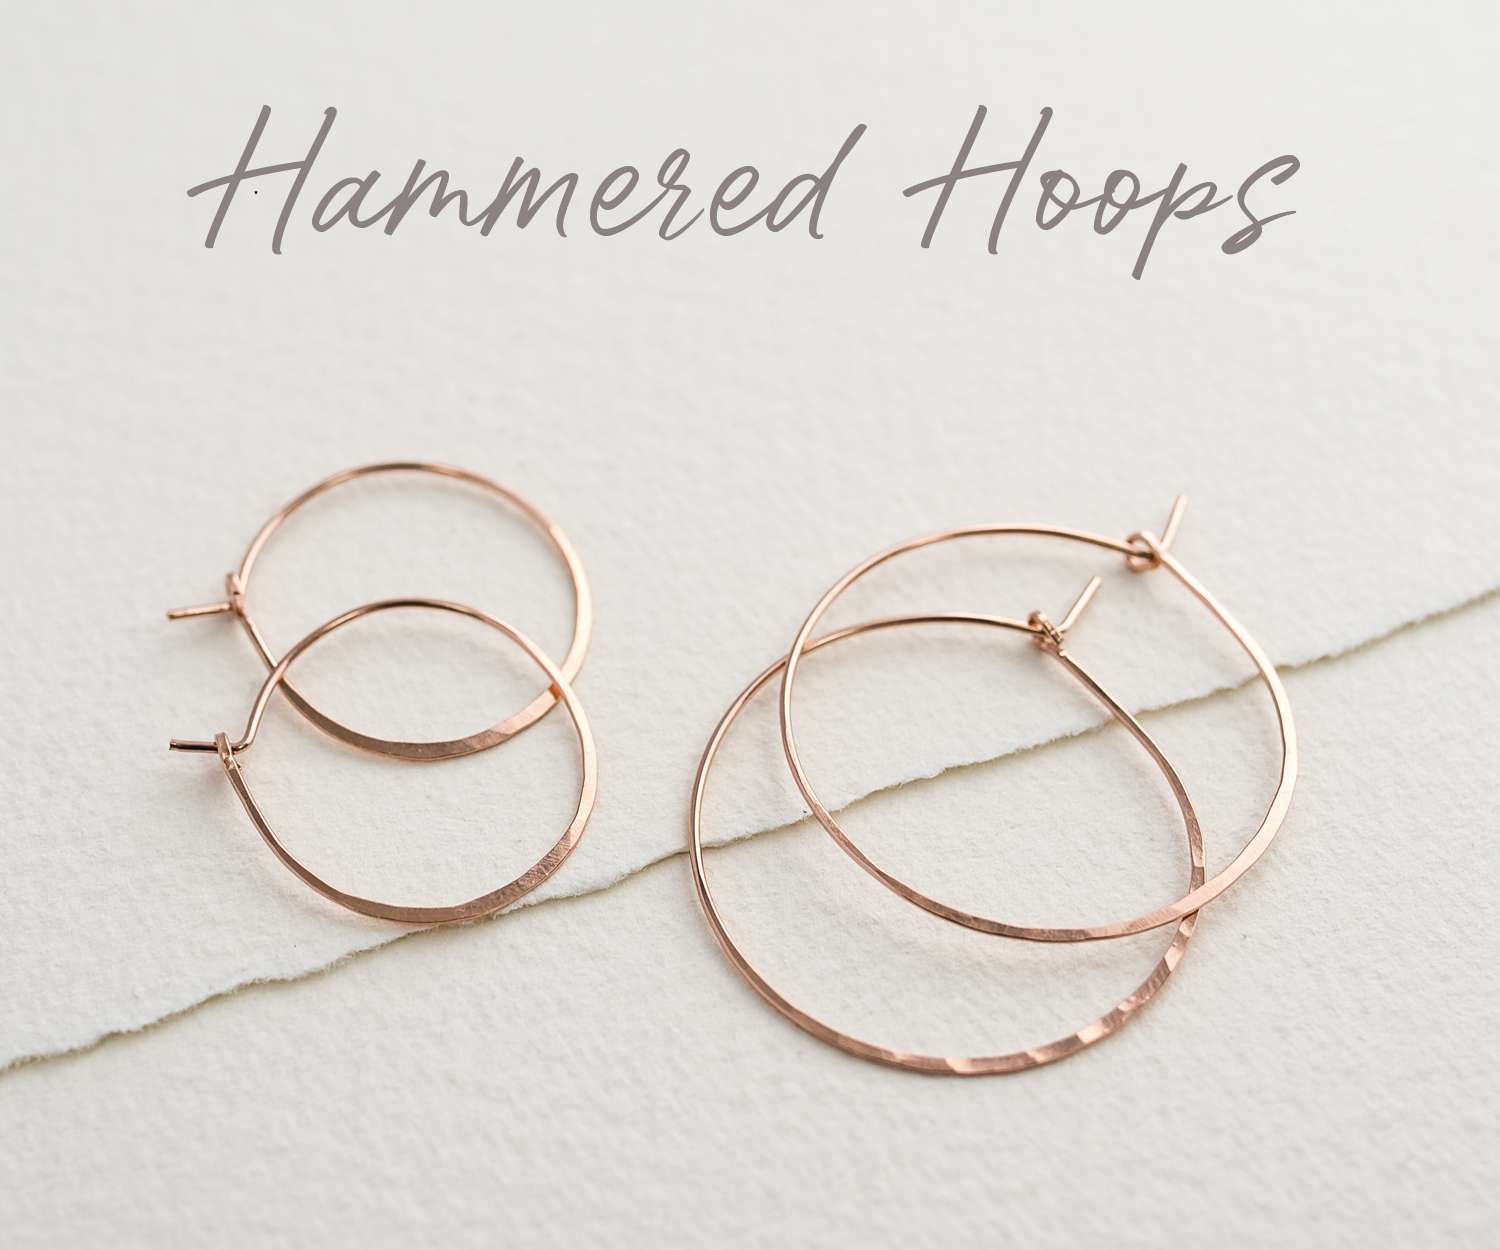 Hand-forged Jewellery made in Northumberland Sarah Hickey Jewellery